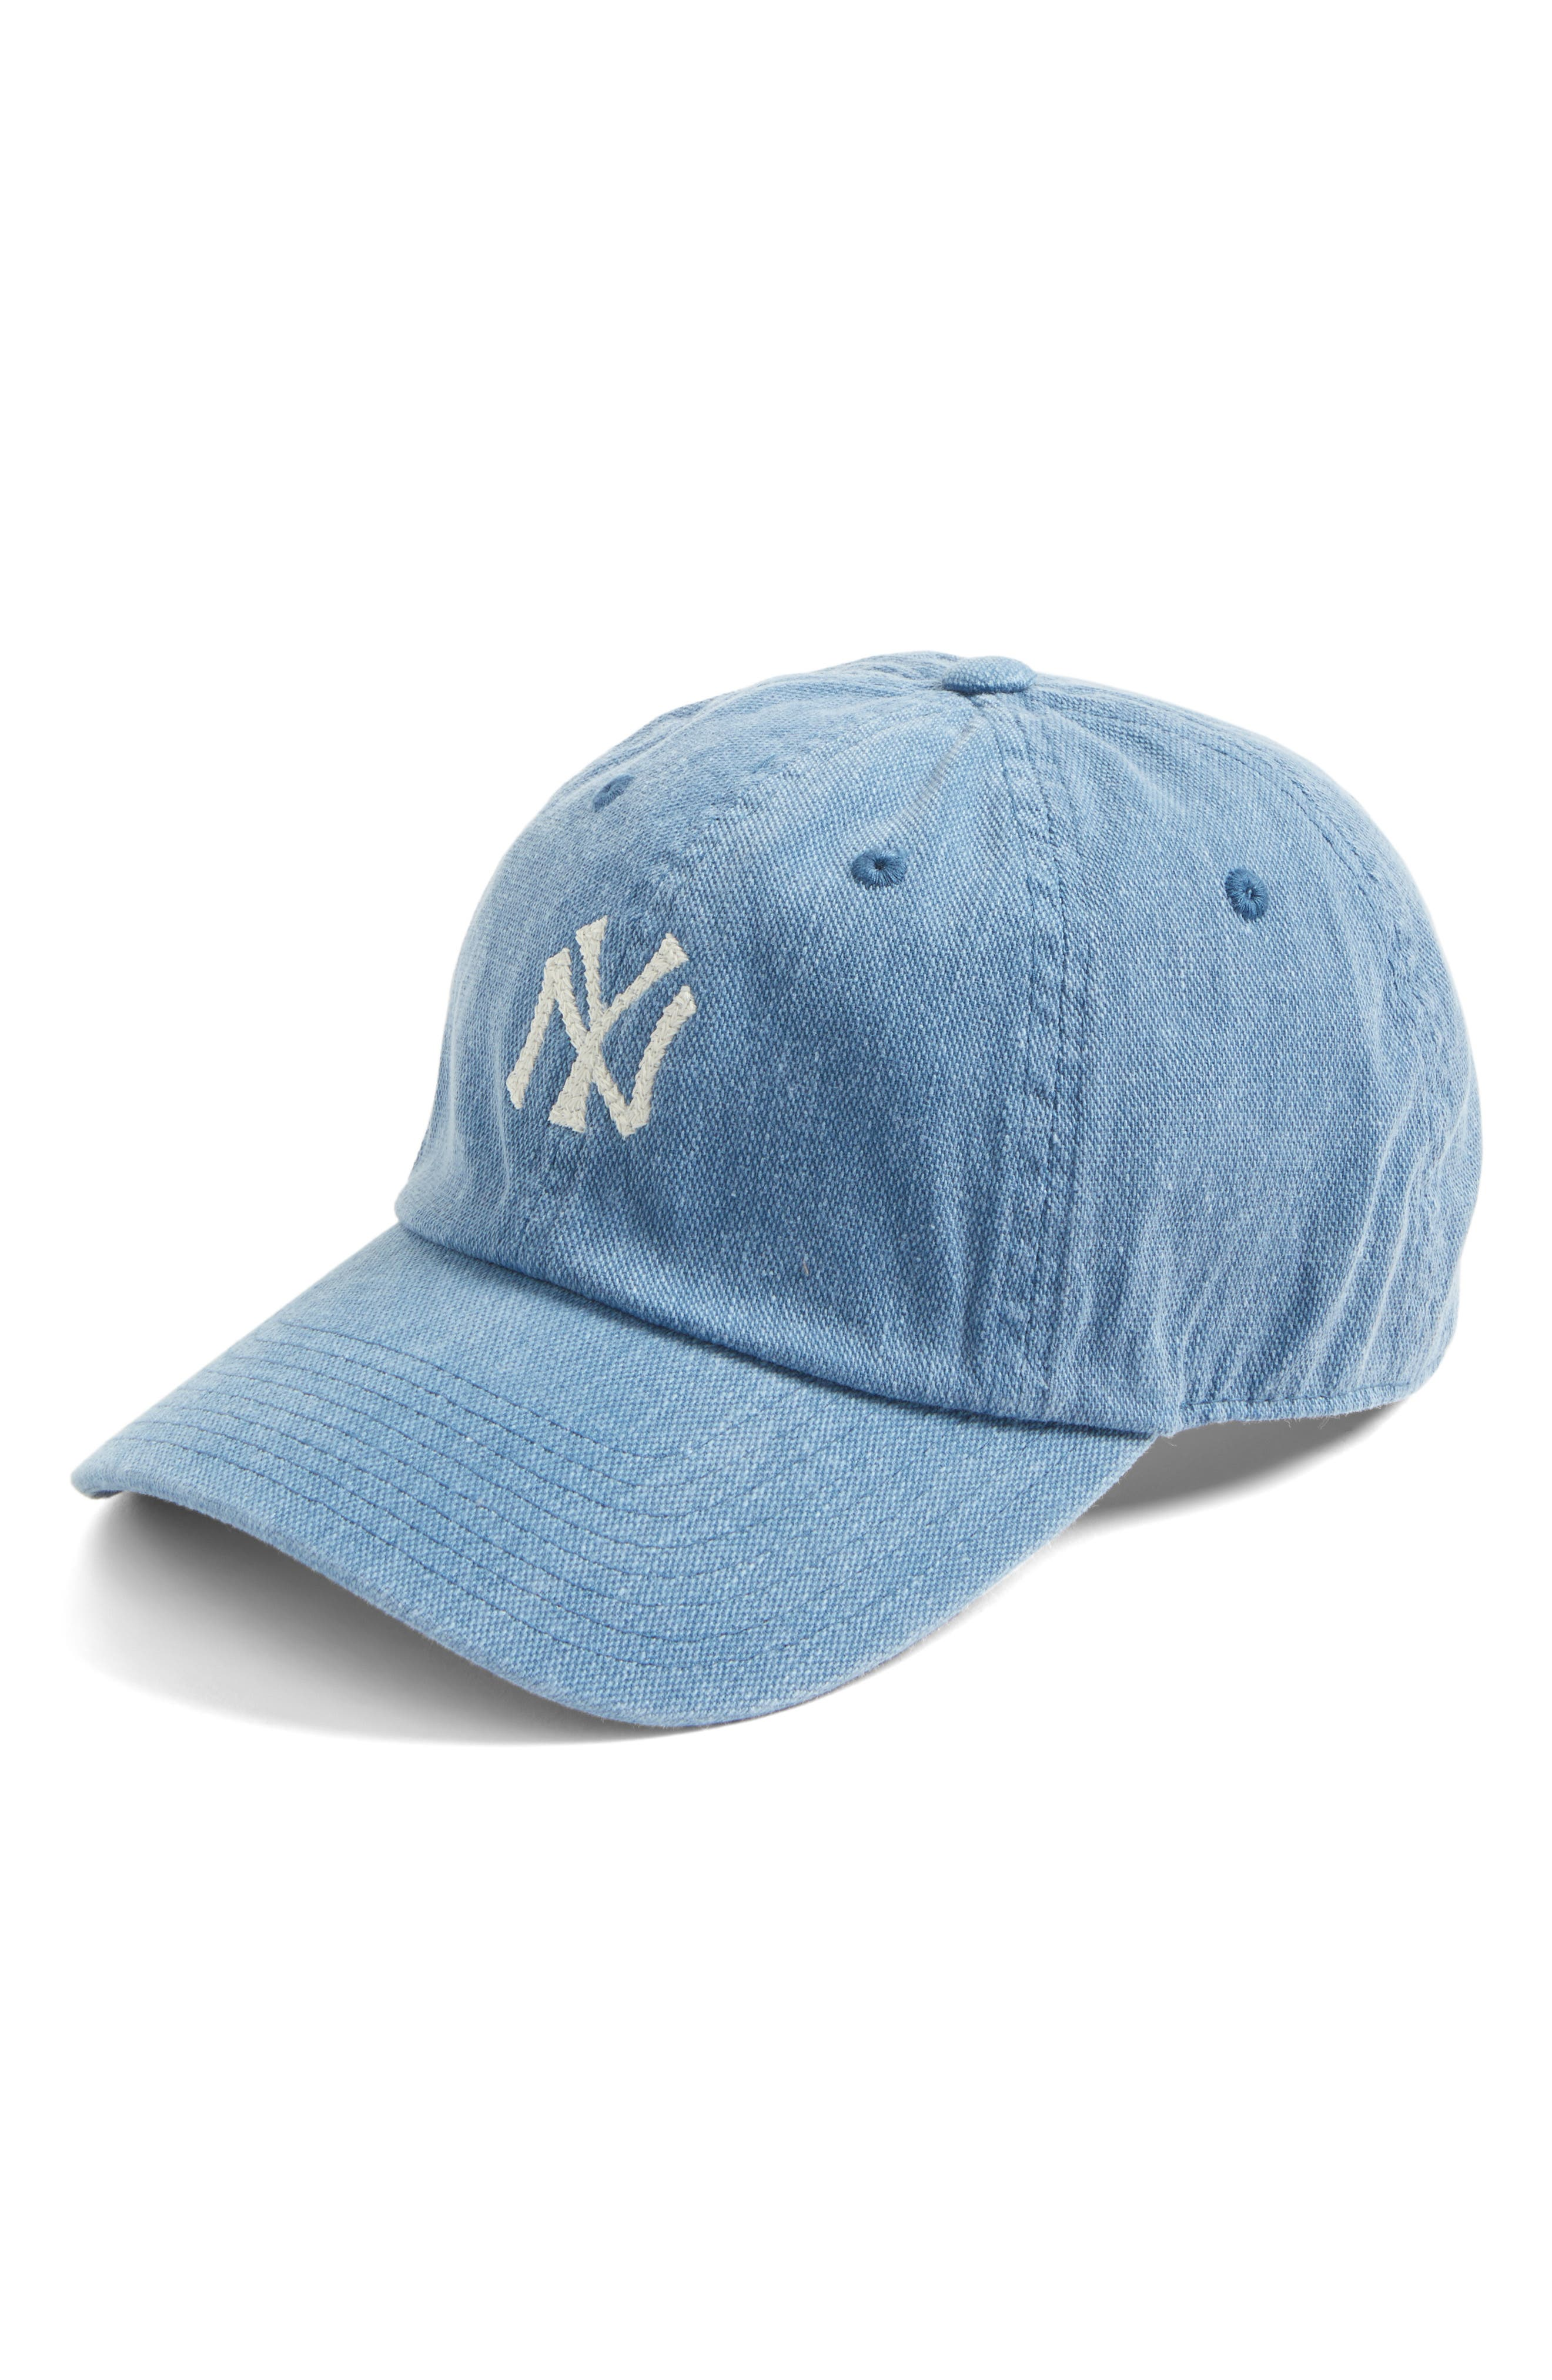 Danbury New York Yankees Baseball Cap,                         Main,                         color,